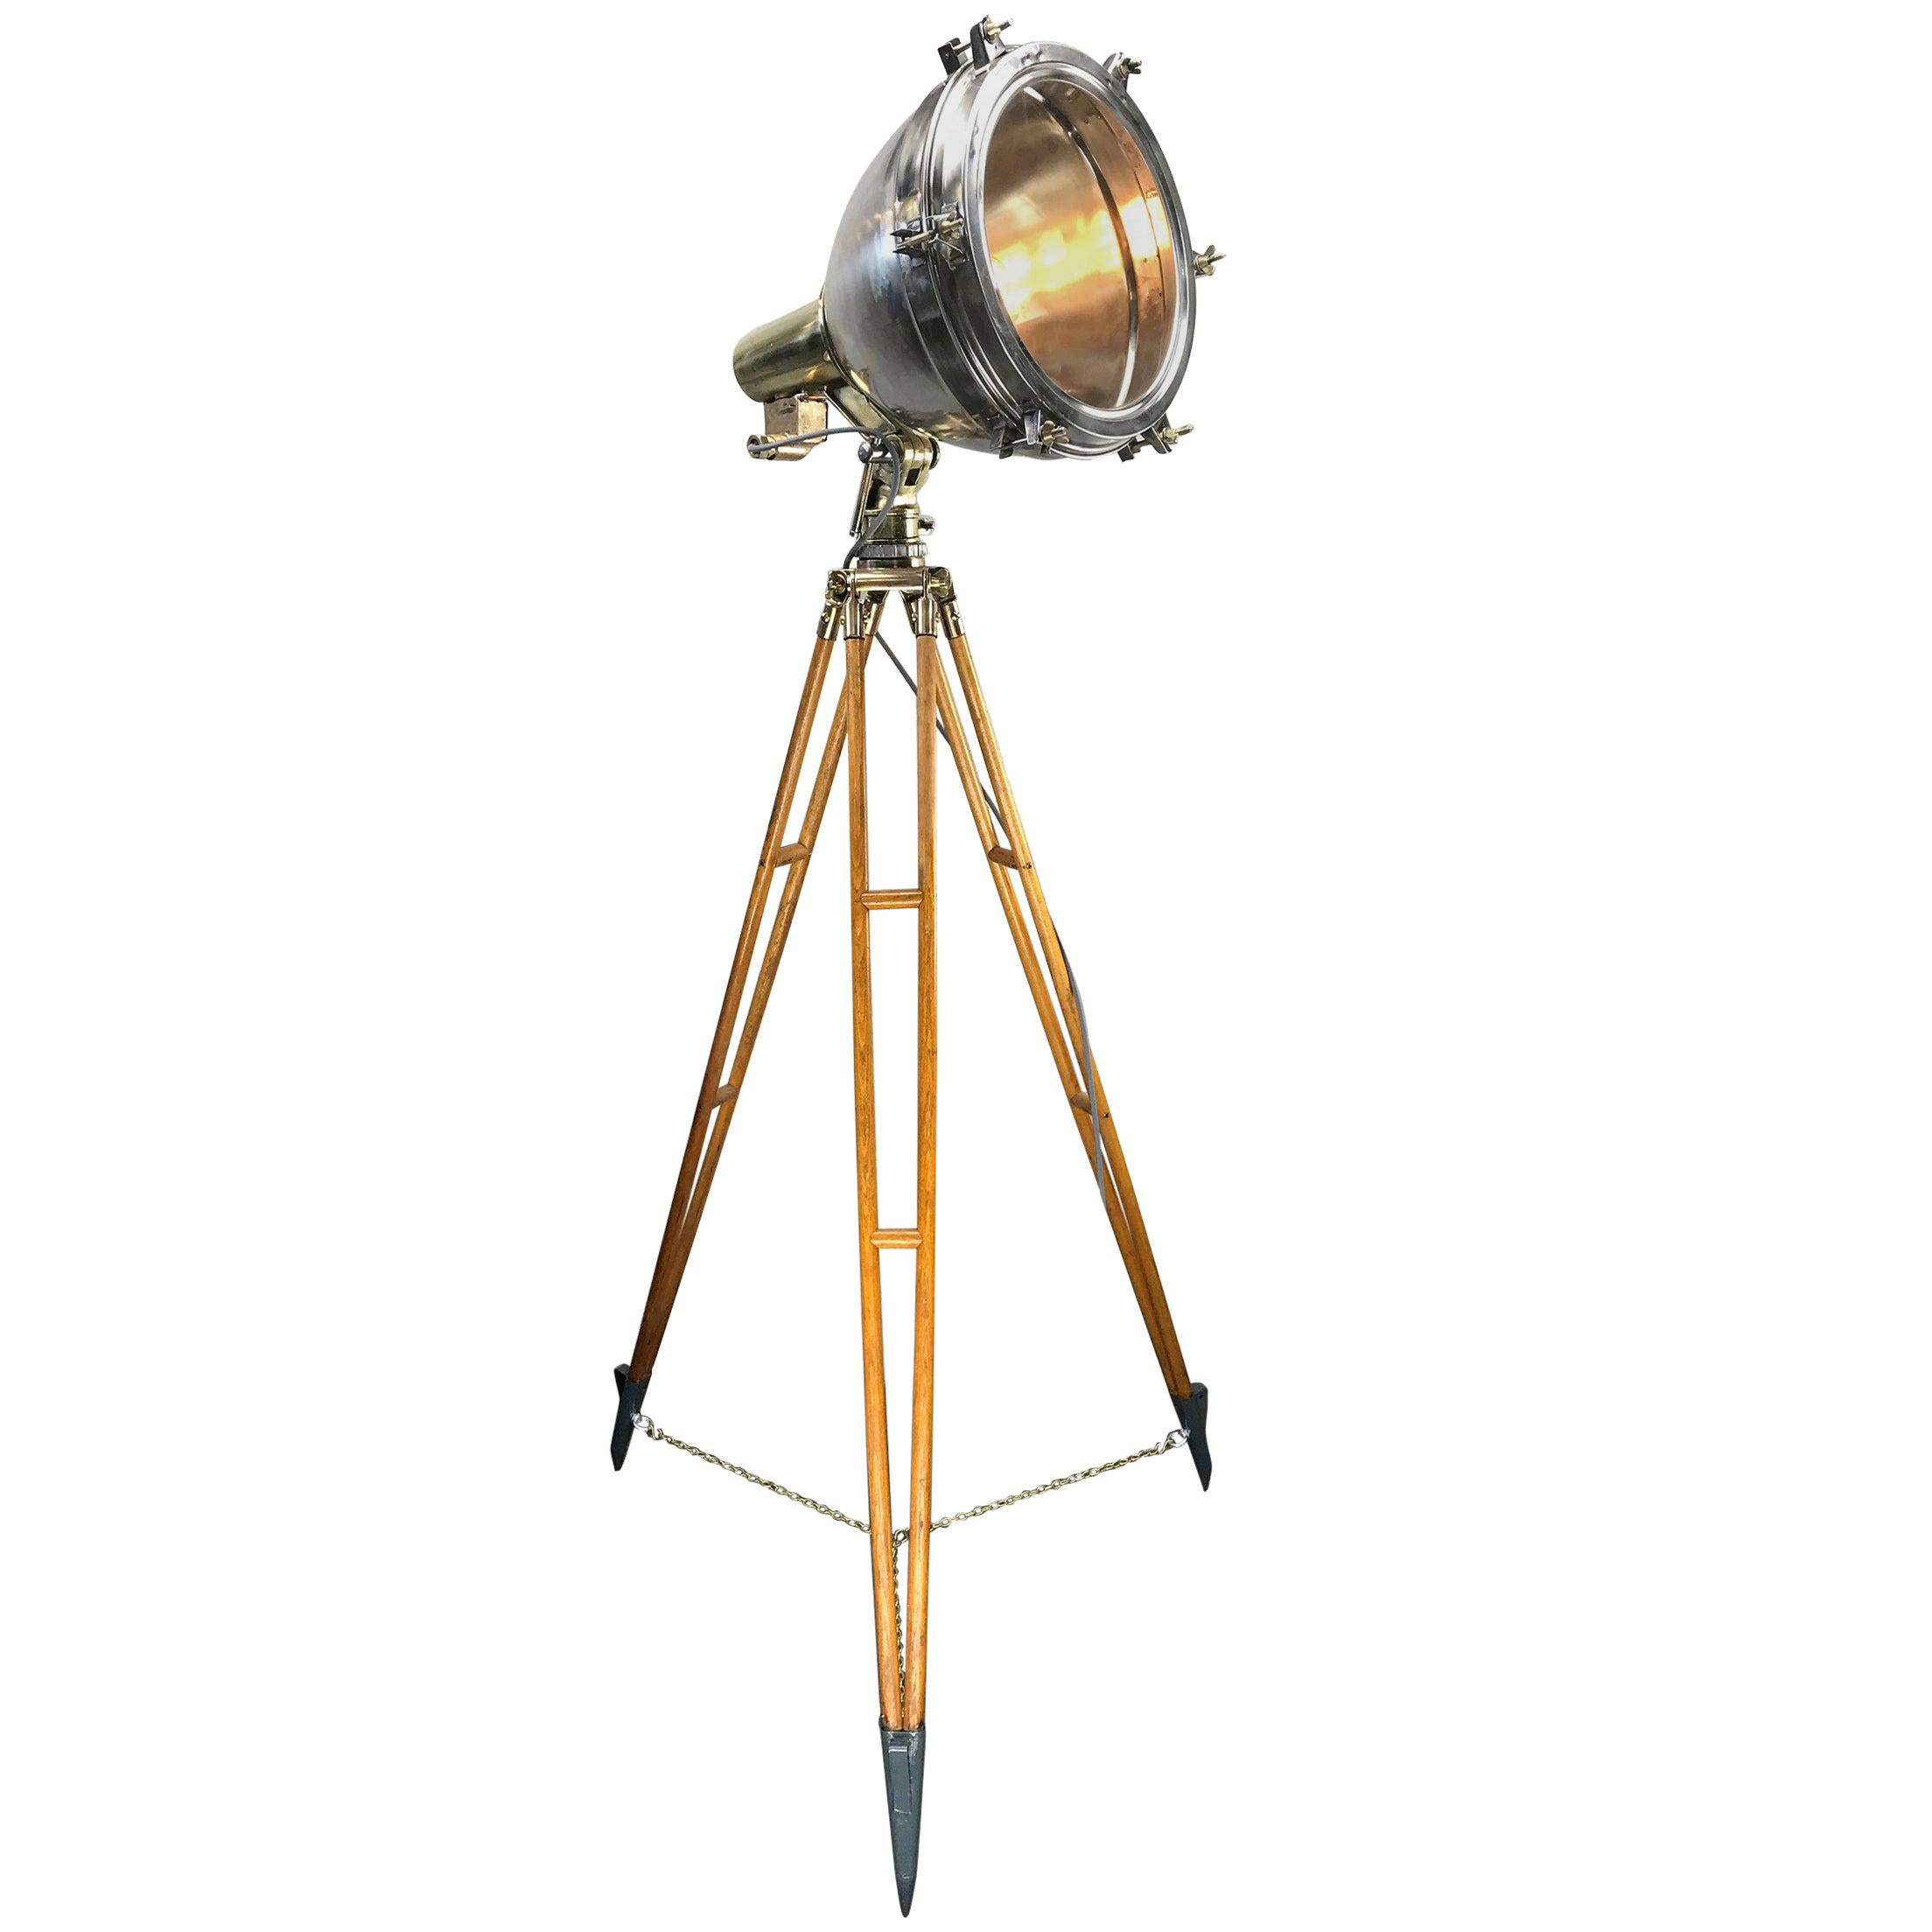 1970s Japanese Industrial Brass, Bronze and Stainless Steel Search Light Tripod